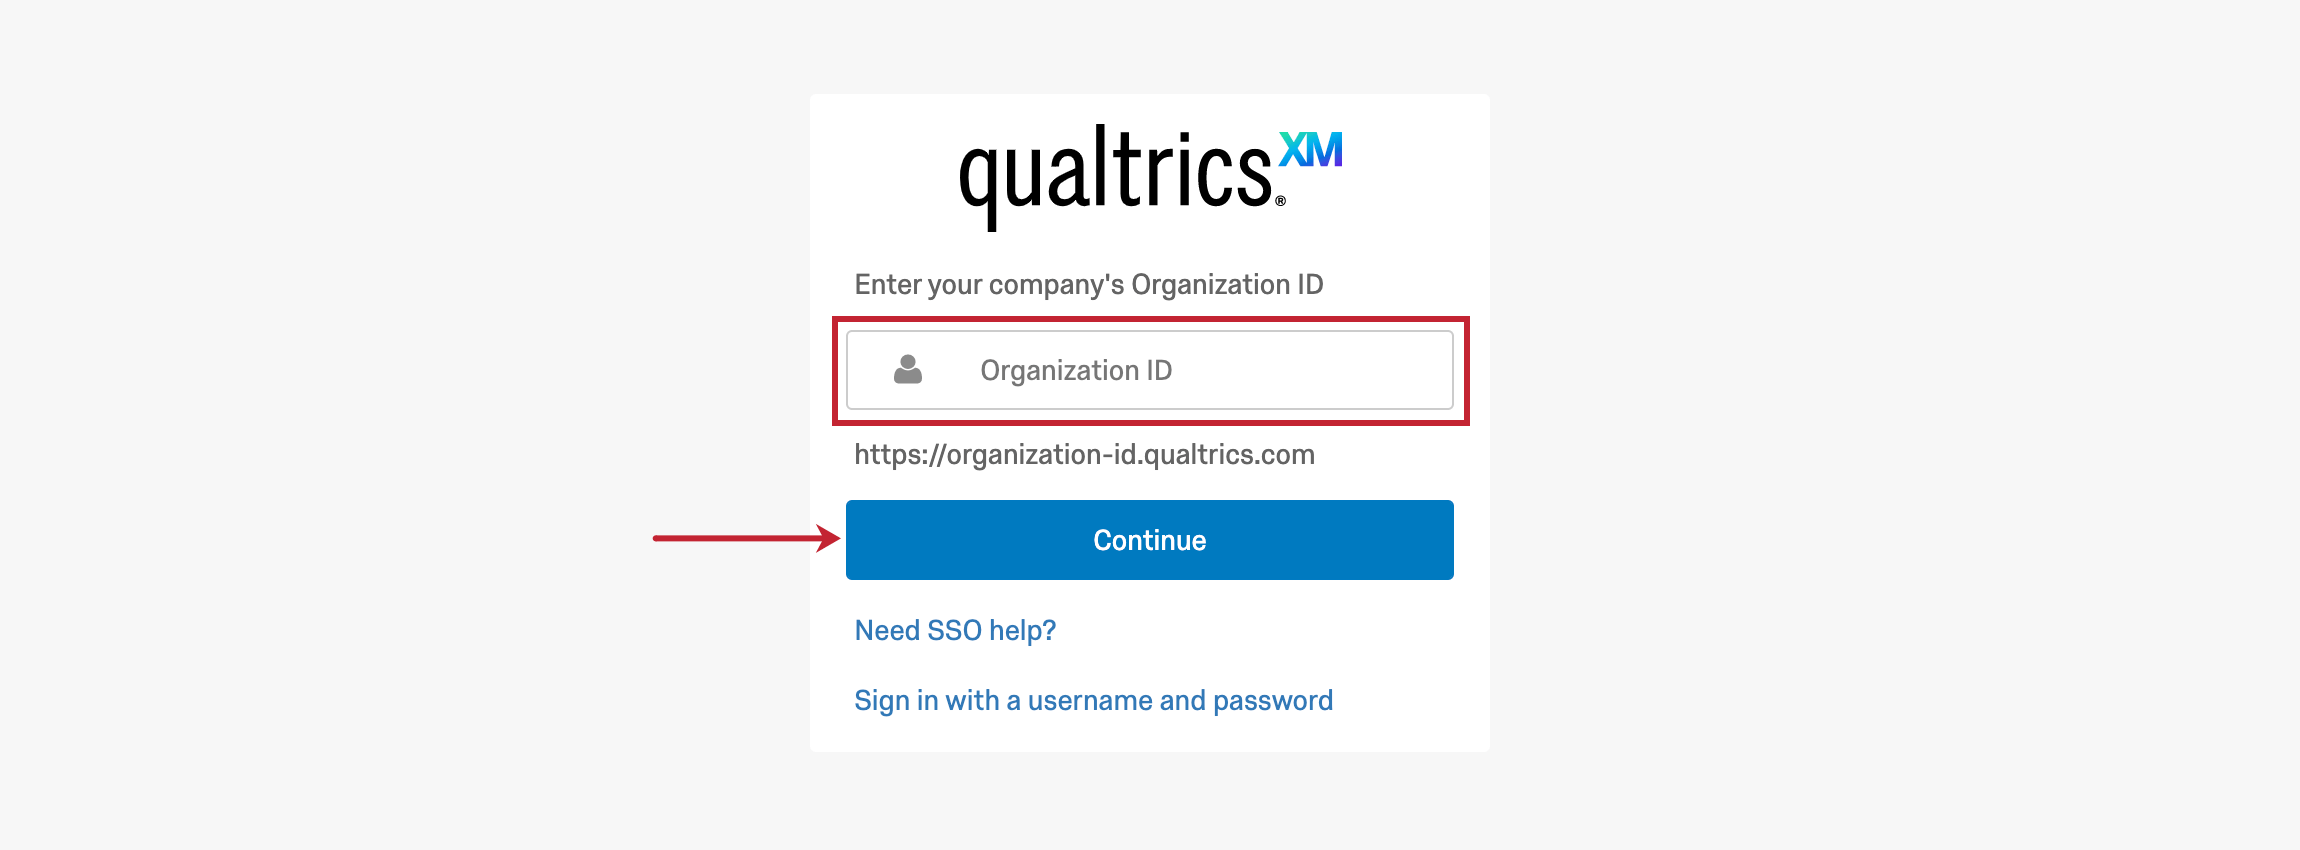 A field for organization ID and a Continue button